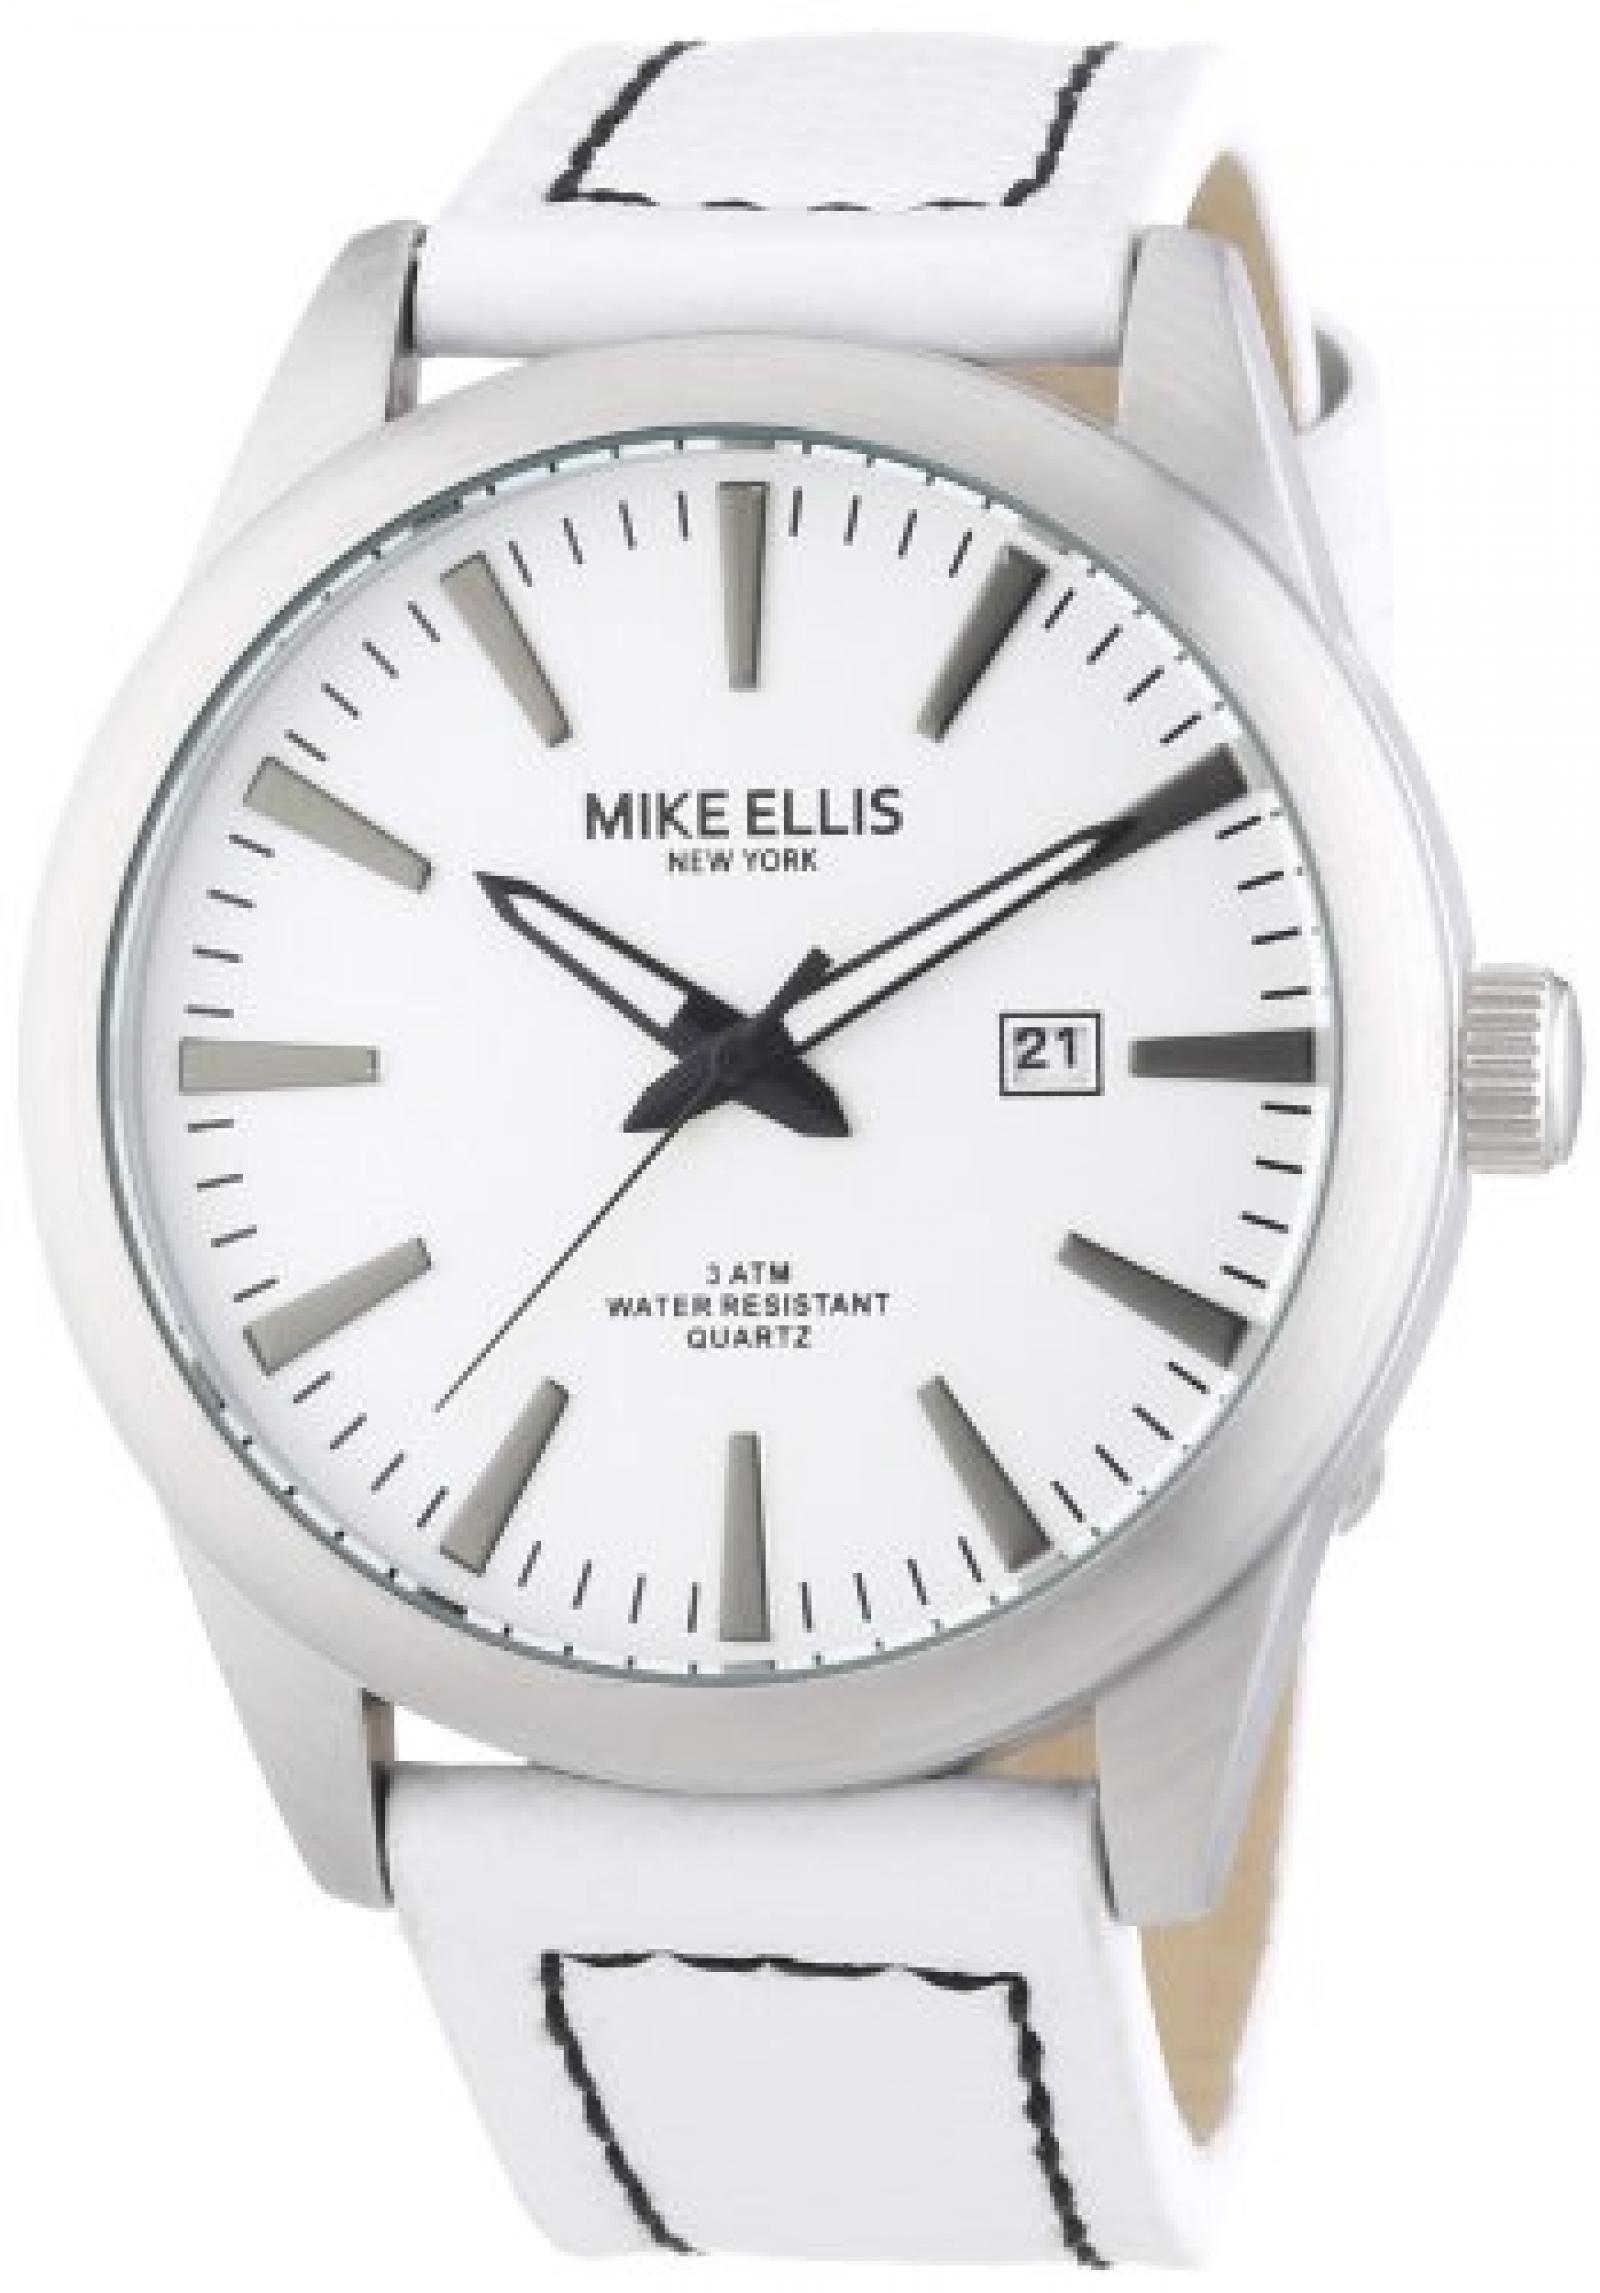 Mike Ellis New York Herren-Armbanduhr XL Analog Quarz 17993